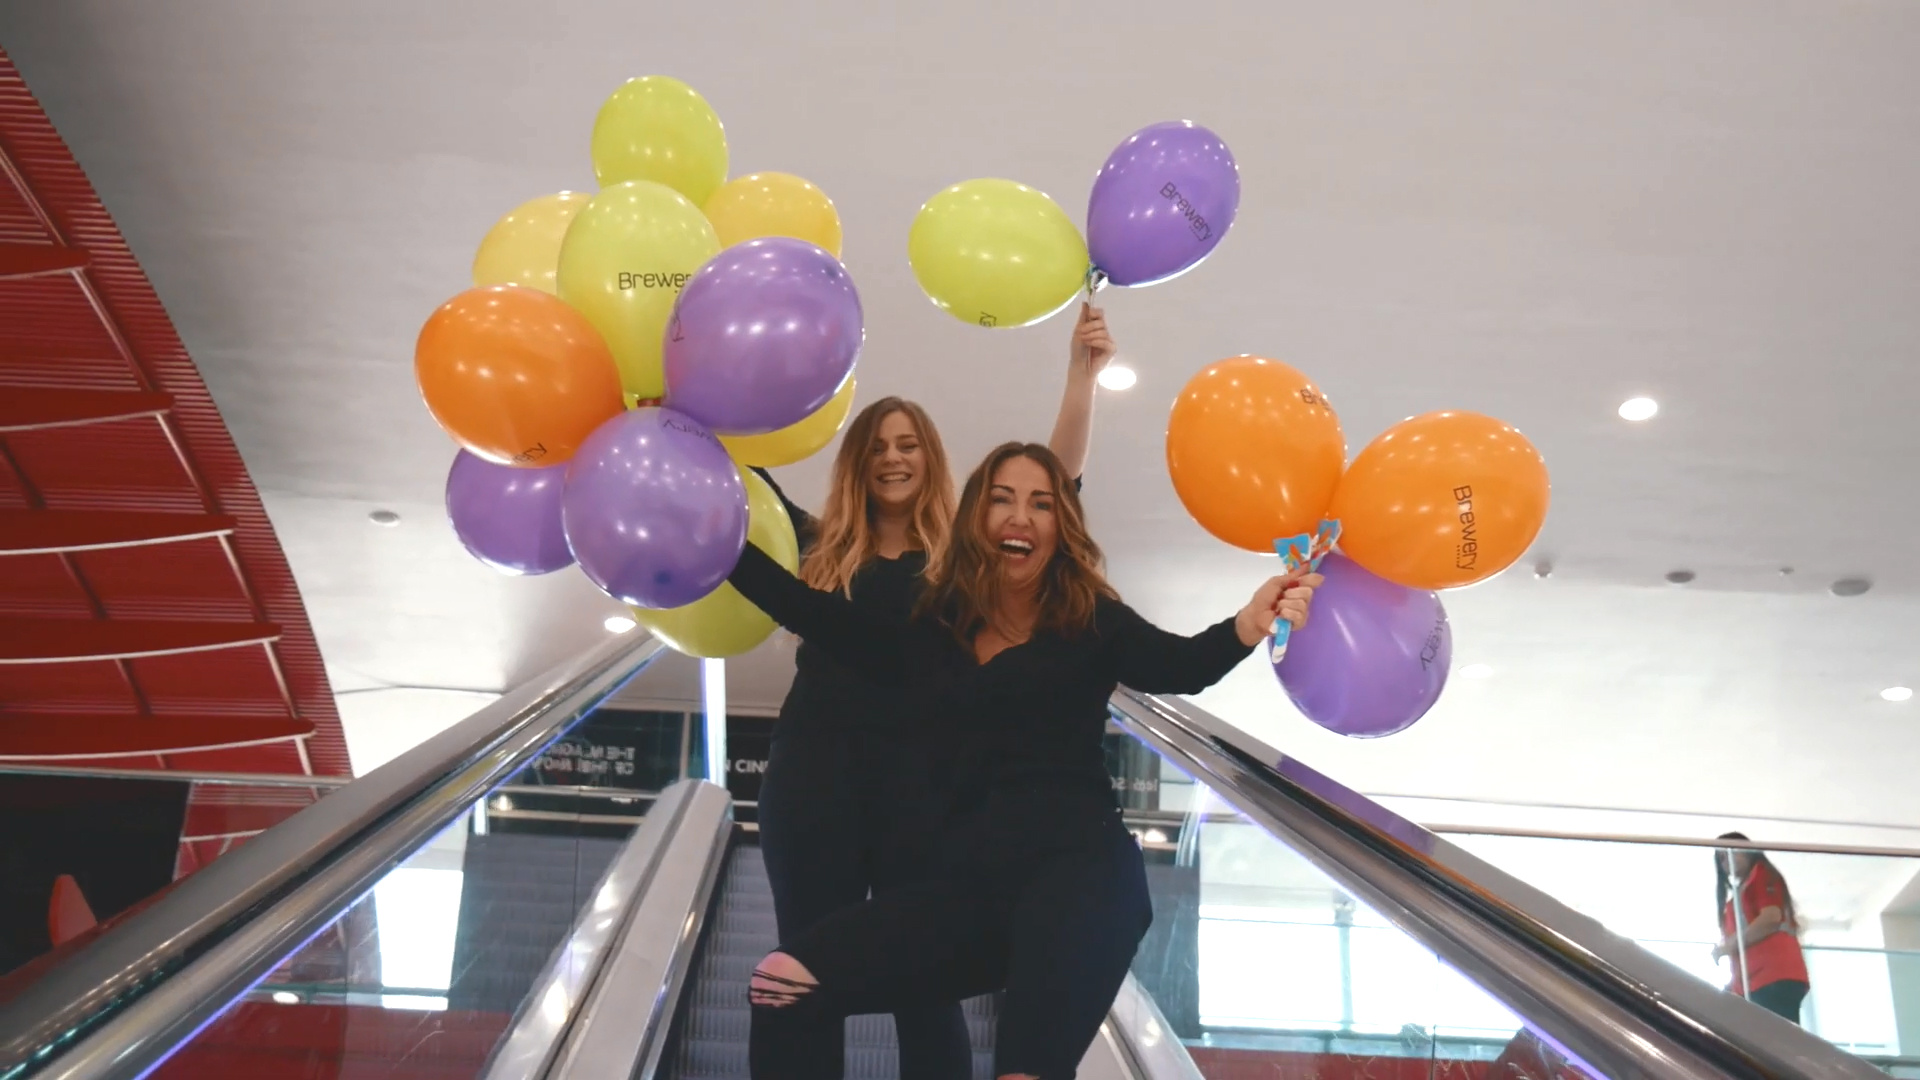 Women Holding Bunches of Branded Balloons on BalloonGrip